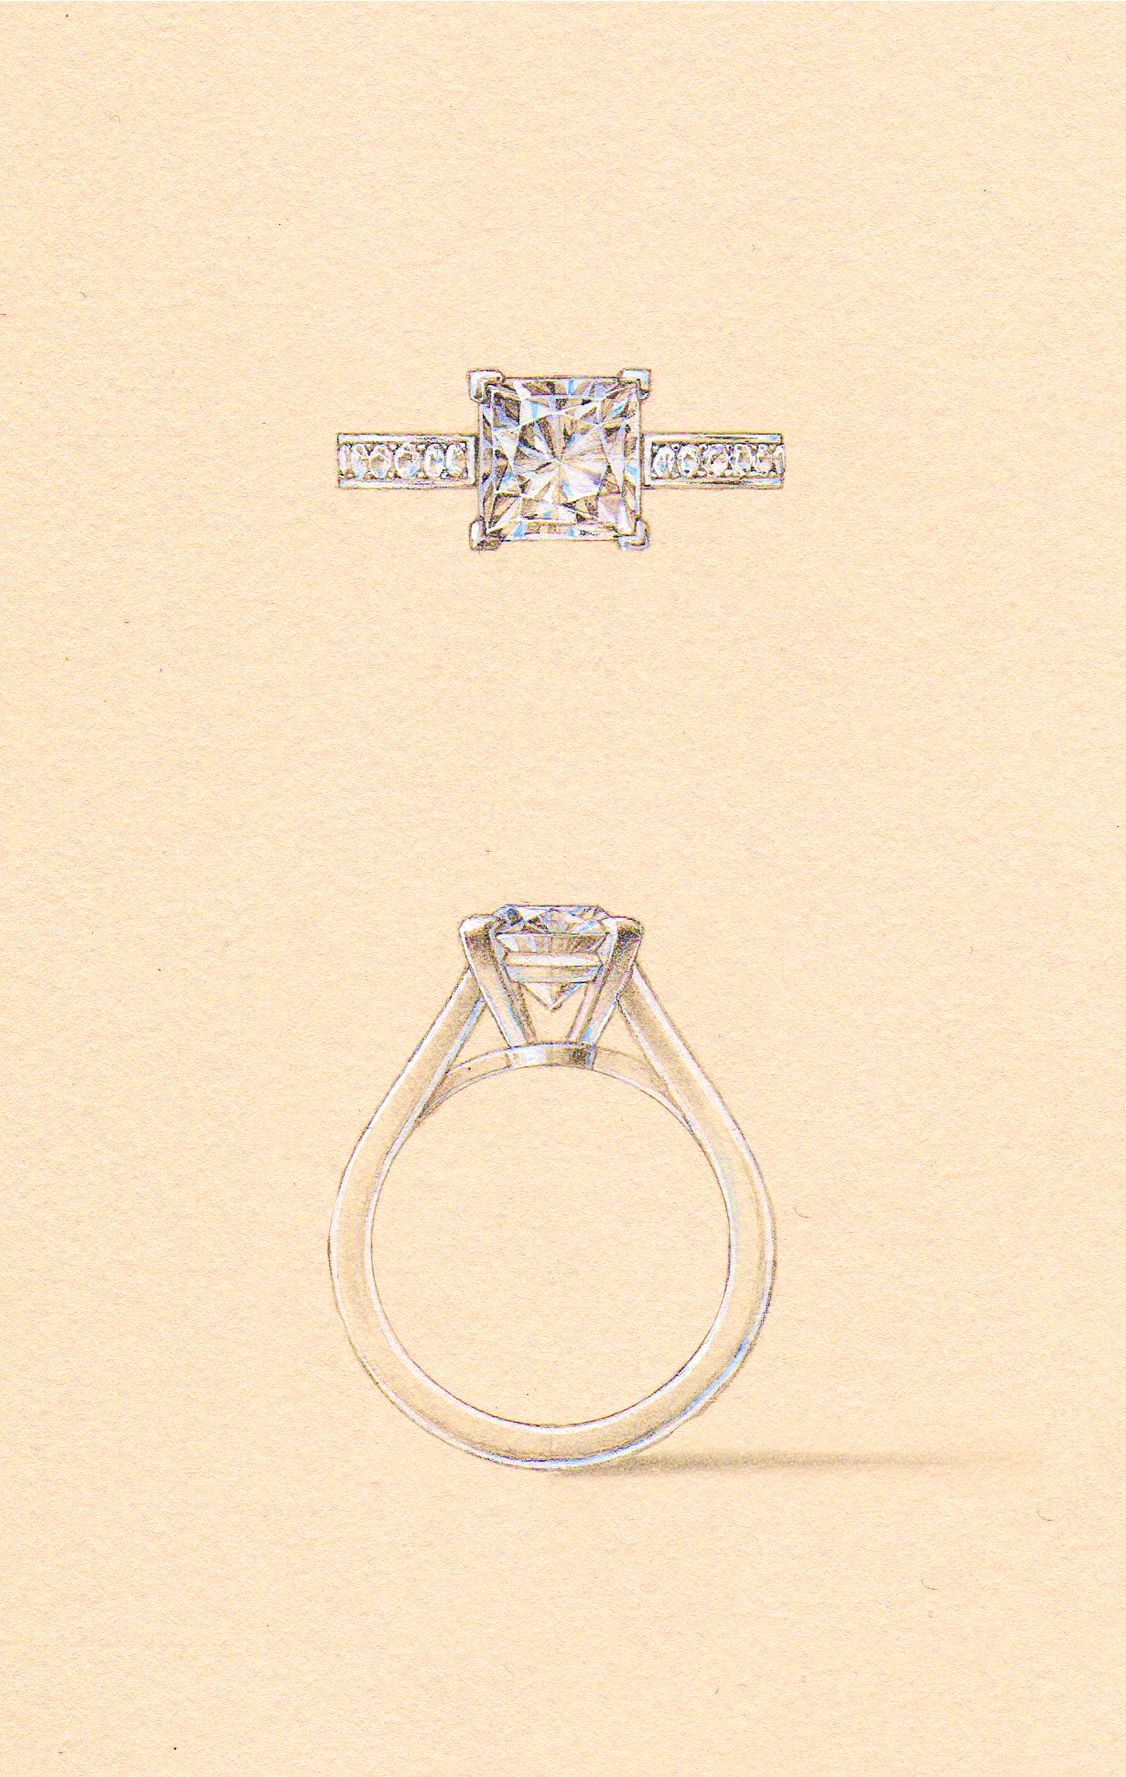 The Amore Setting Naveya Sloane Engagement Ring Made To Order In